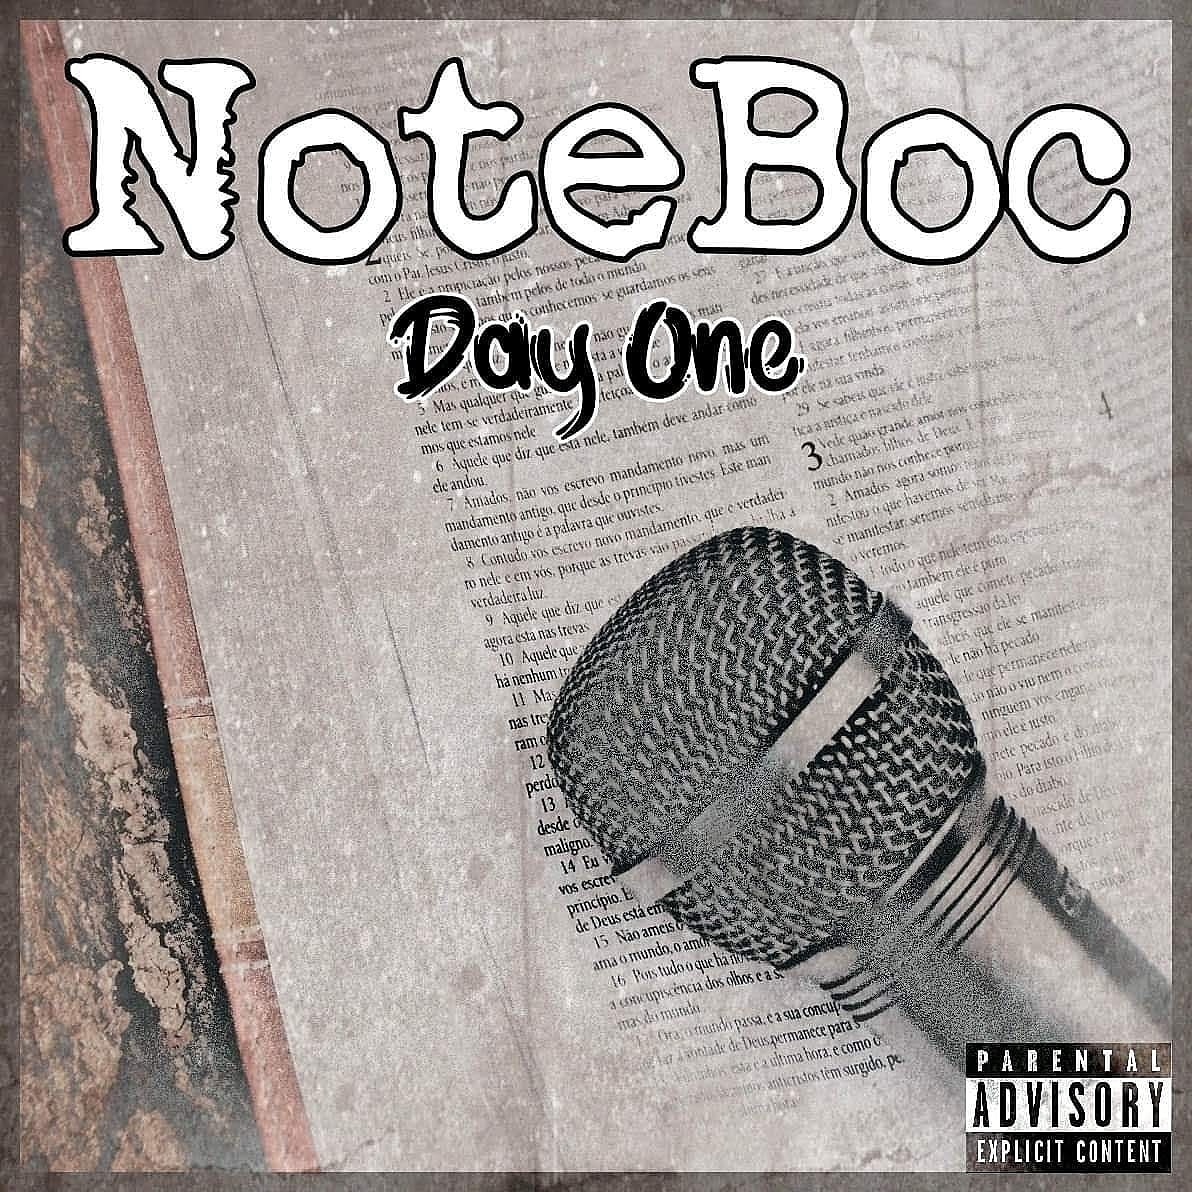 """New Music """"Day One"""" @earlbarkley COMING OUT SOON   #BentleyRecords #BentleyRecordsRED #BentleyGang #NewMusic #Music #Release #RecordLabel #HipHop #Rap #Pop #Promo #Retweet #Repostpic.twitter.com/sYl8Hleno7"""